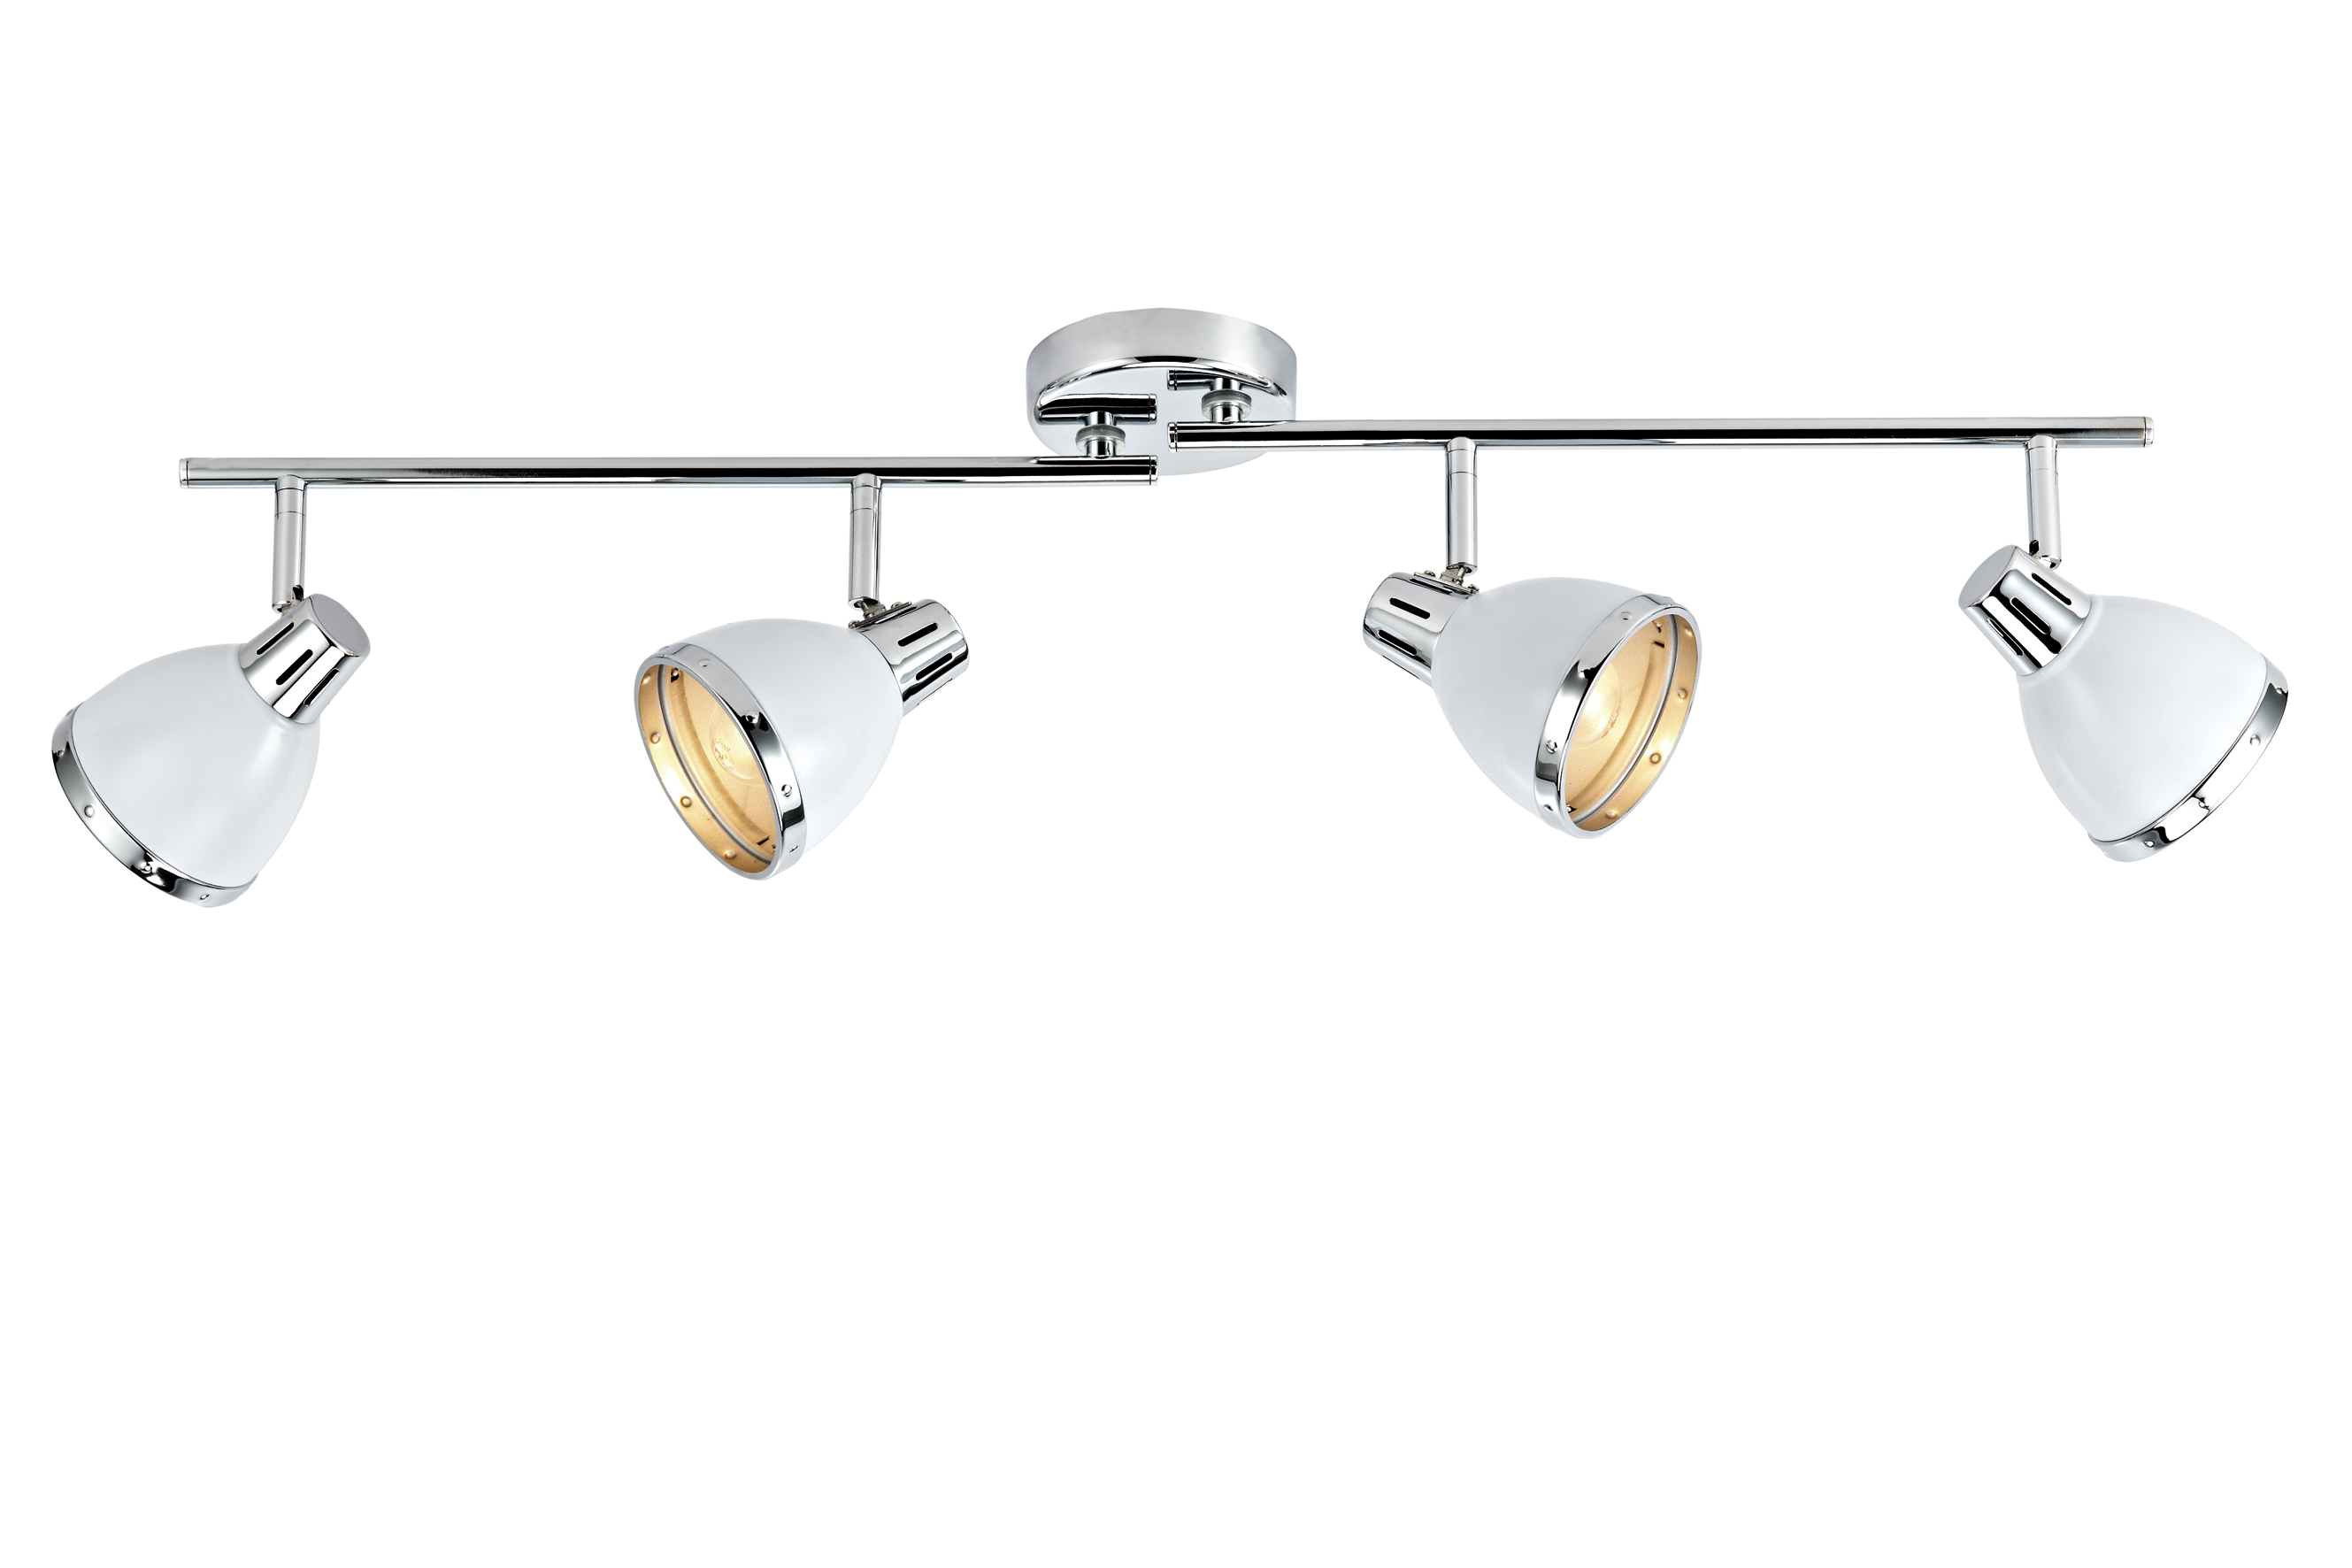 light astro rated image lights round downlights fittings fire fixed downlight indoor spotlights minima ceiling